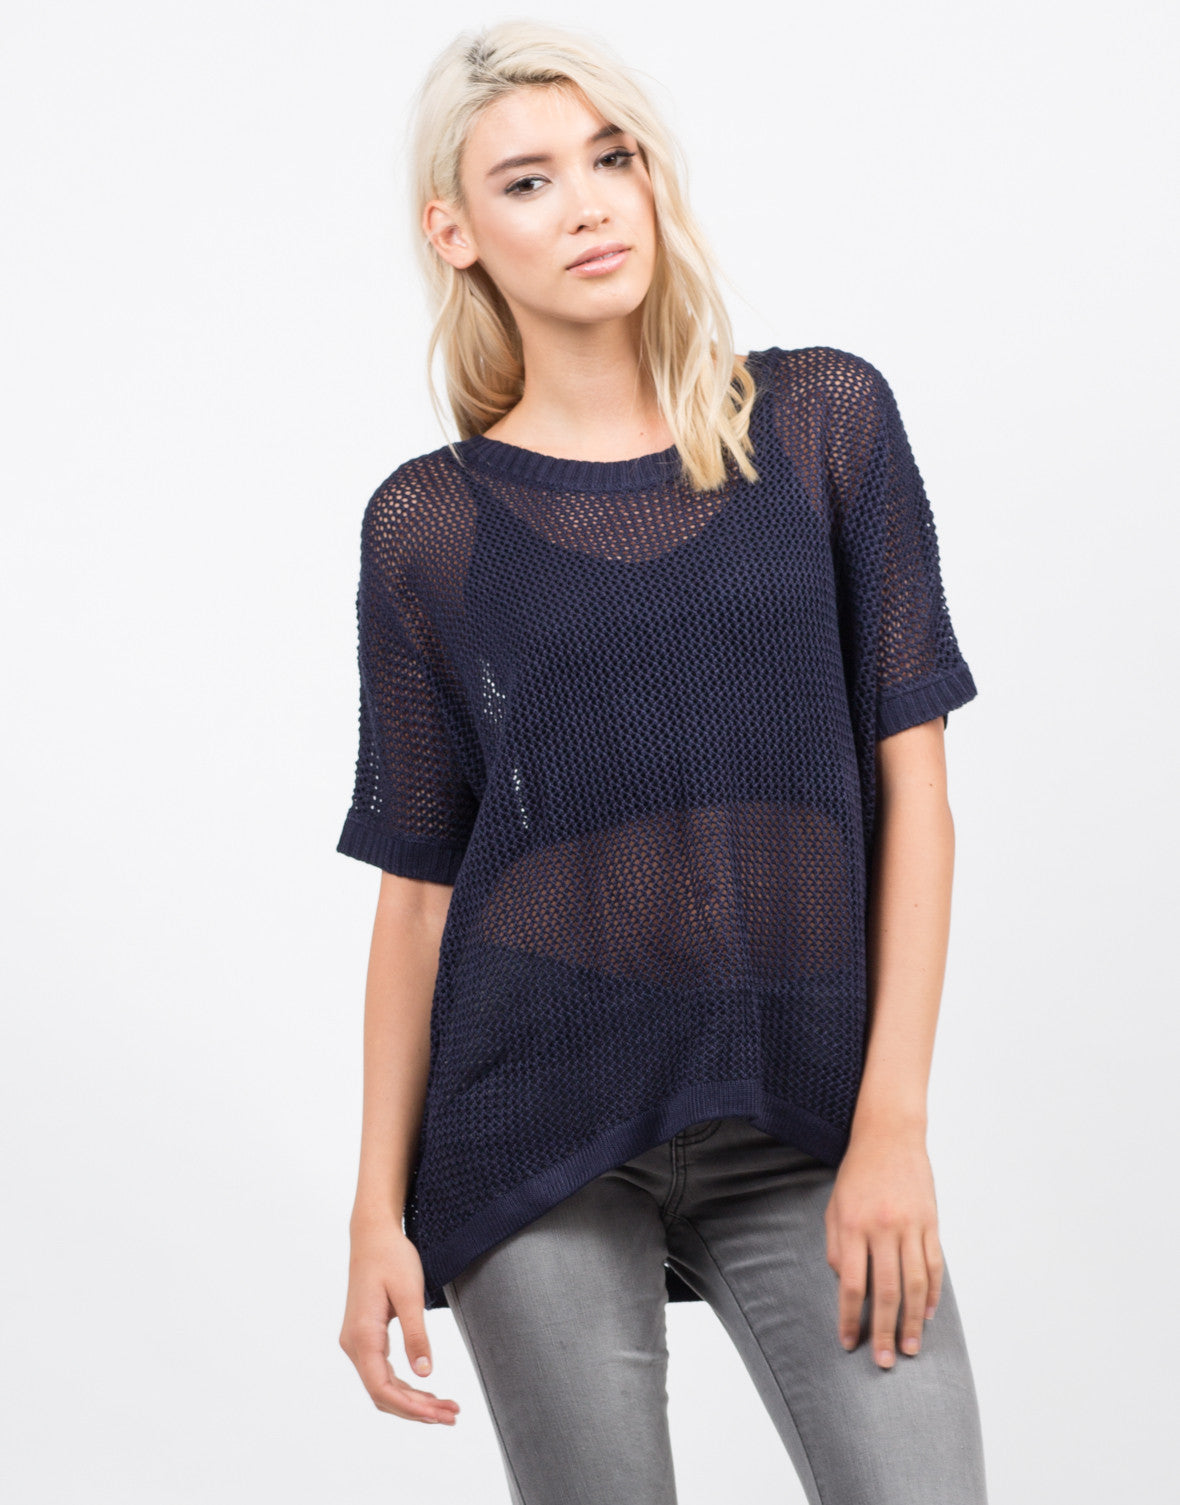 Front View of Honeycomb Knit Top